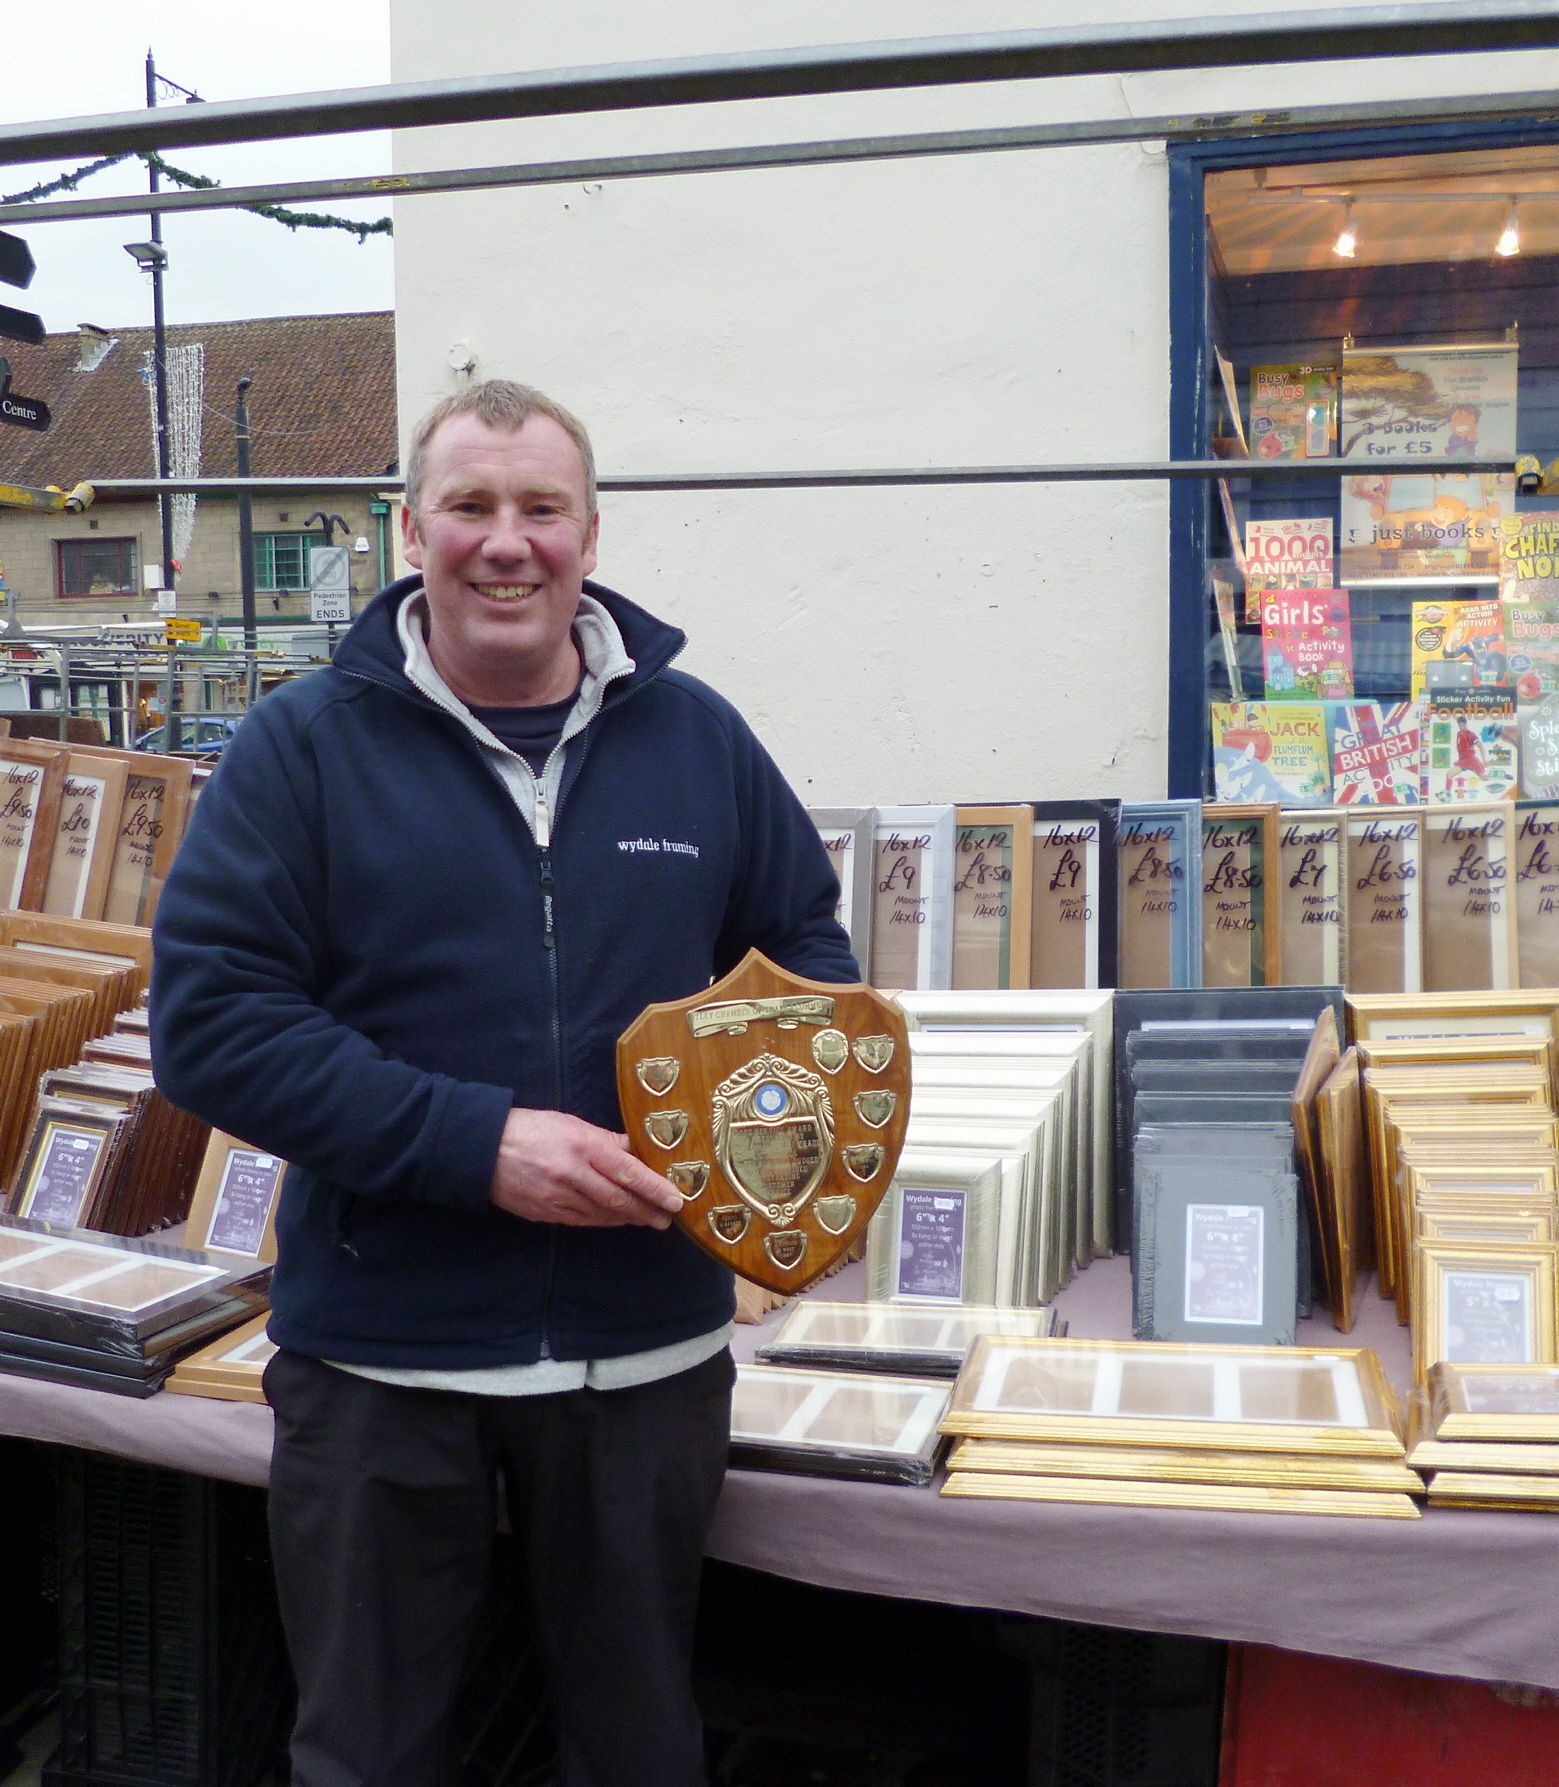 Andrew Halliday from Wydale Framing at Otley Market with the 2013 Otley Chamber of Trade Good Service Award shield